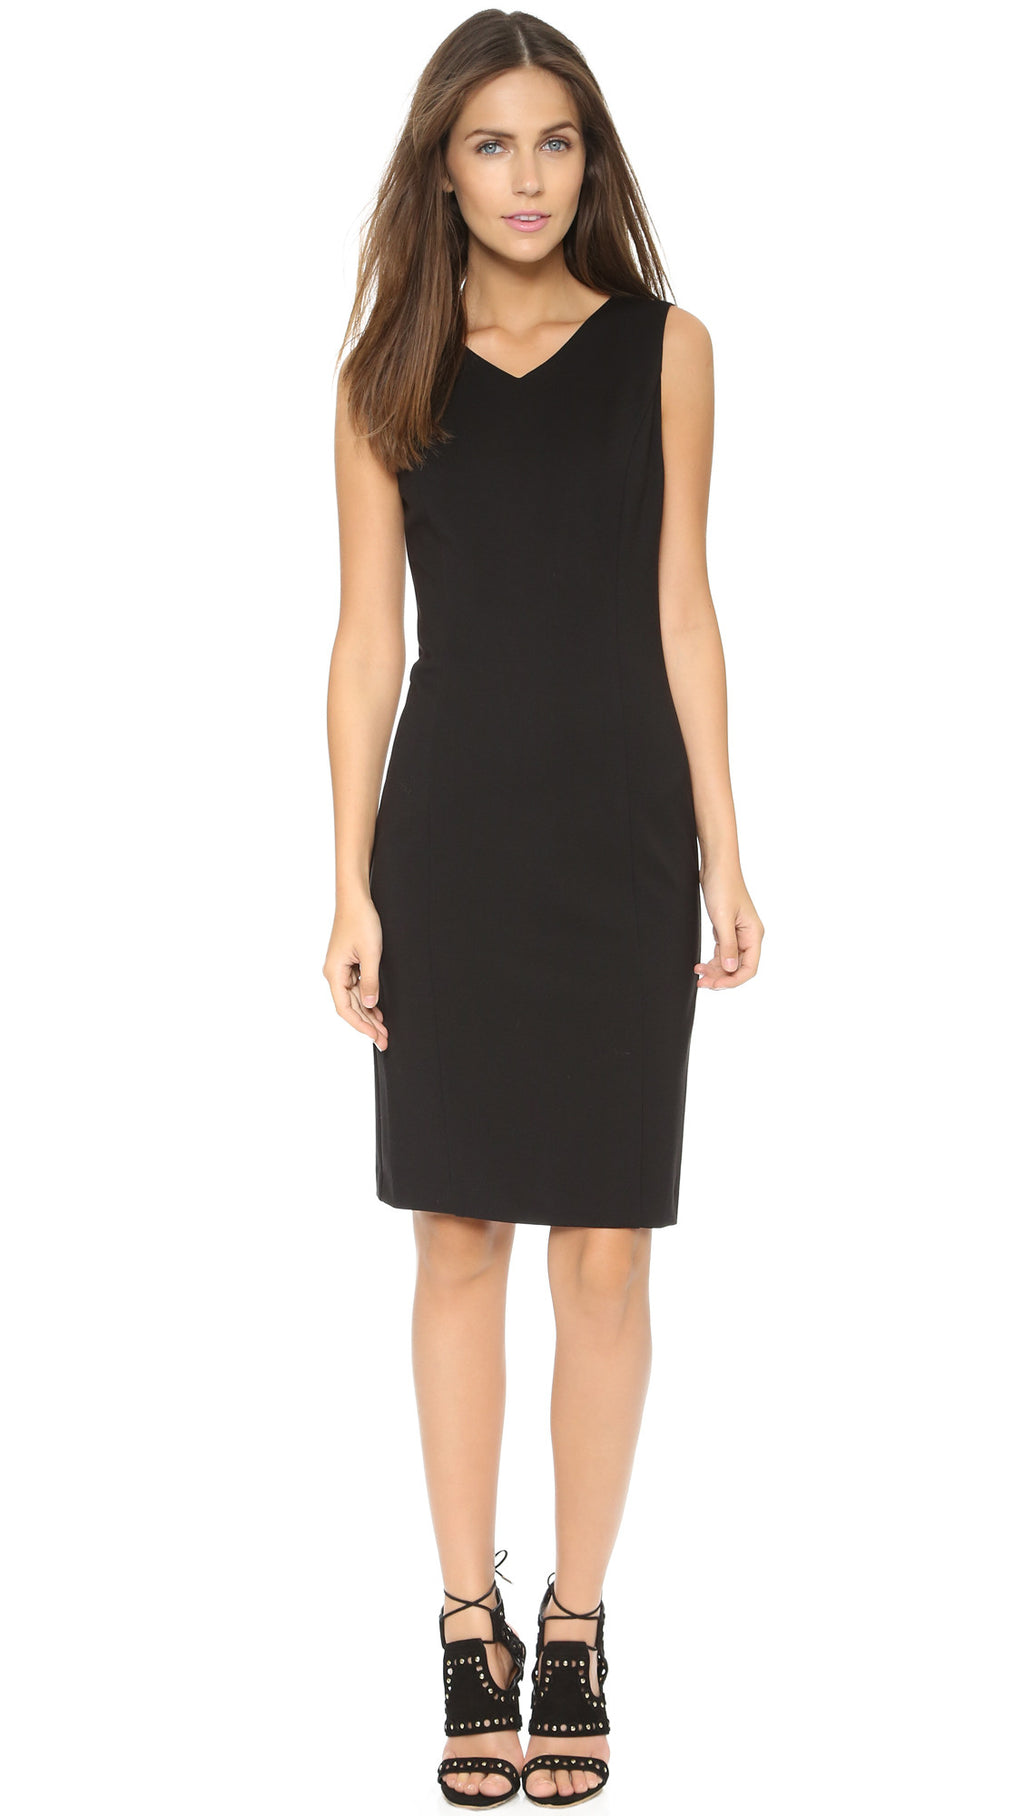 Brand New Zara Black Basic Sheath Dress - Joyce's Closet  - 1